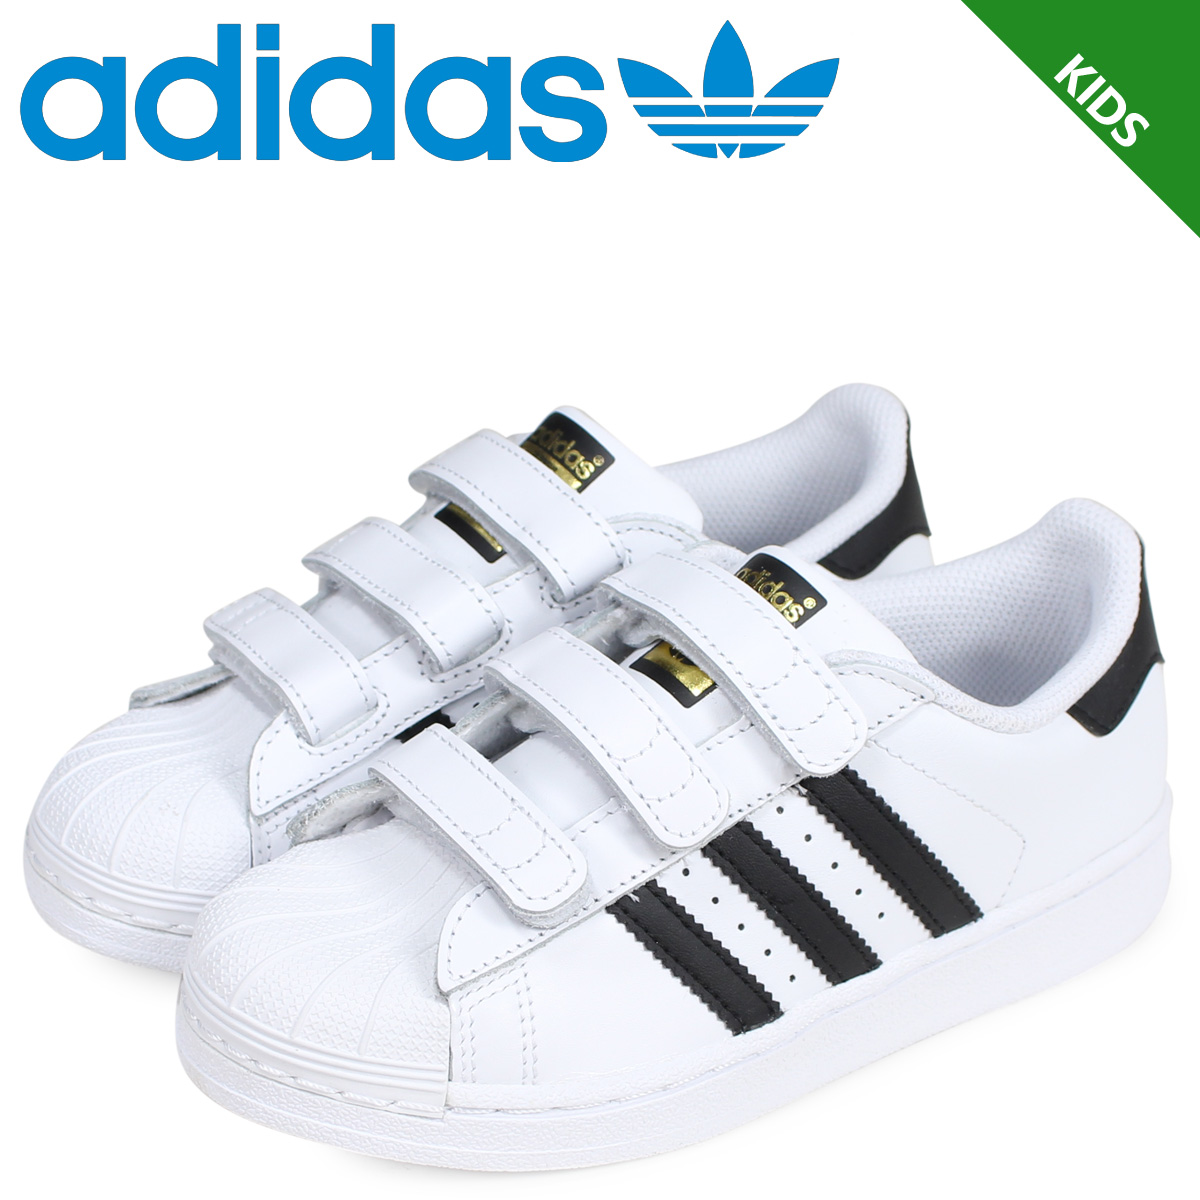 24565b56c adidas Originals Adidas originals superstar sneakers kids Velcro SUPERSTAR  FOUNDATION CF C white white B26070  3 11 Shinnyu load